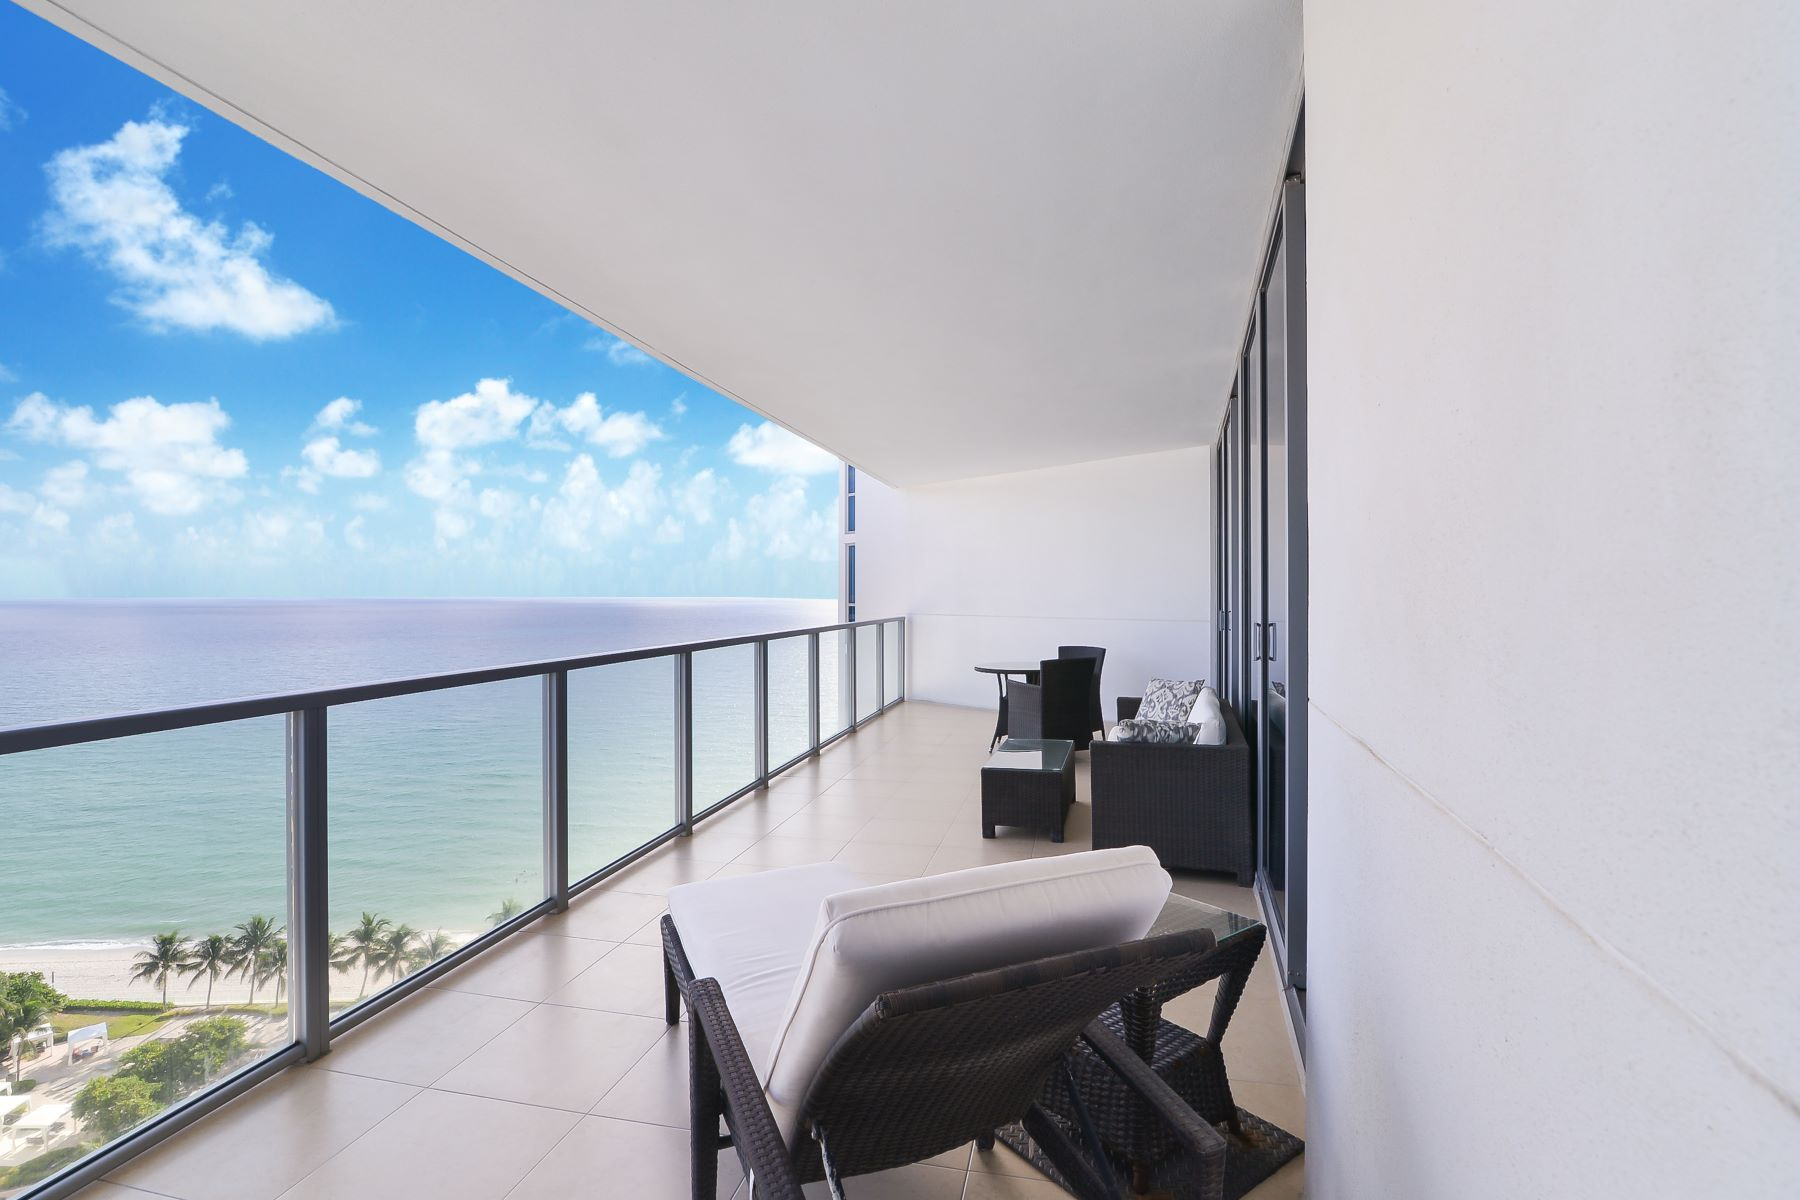 Condominiums for Sale at 3101 S Ocean Dr 1803, Hollywood, Florida 33019 United States